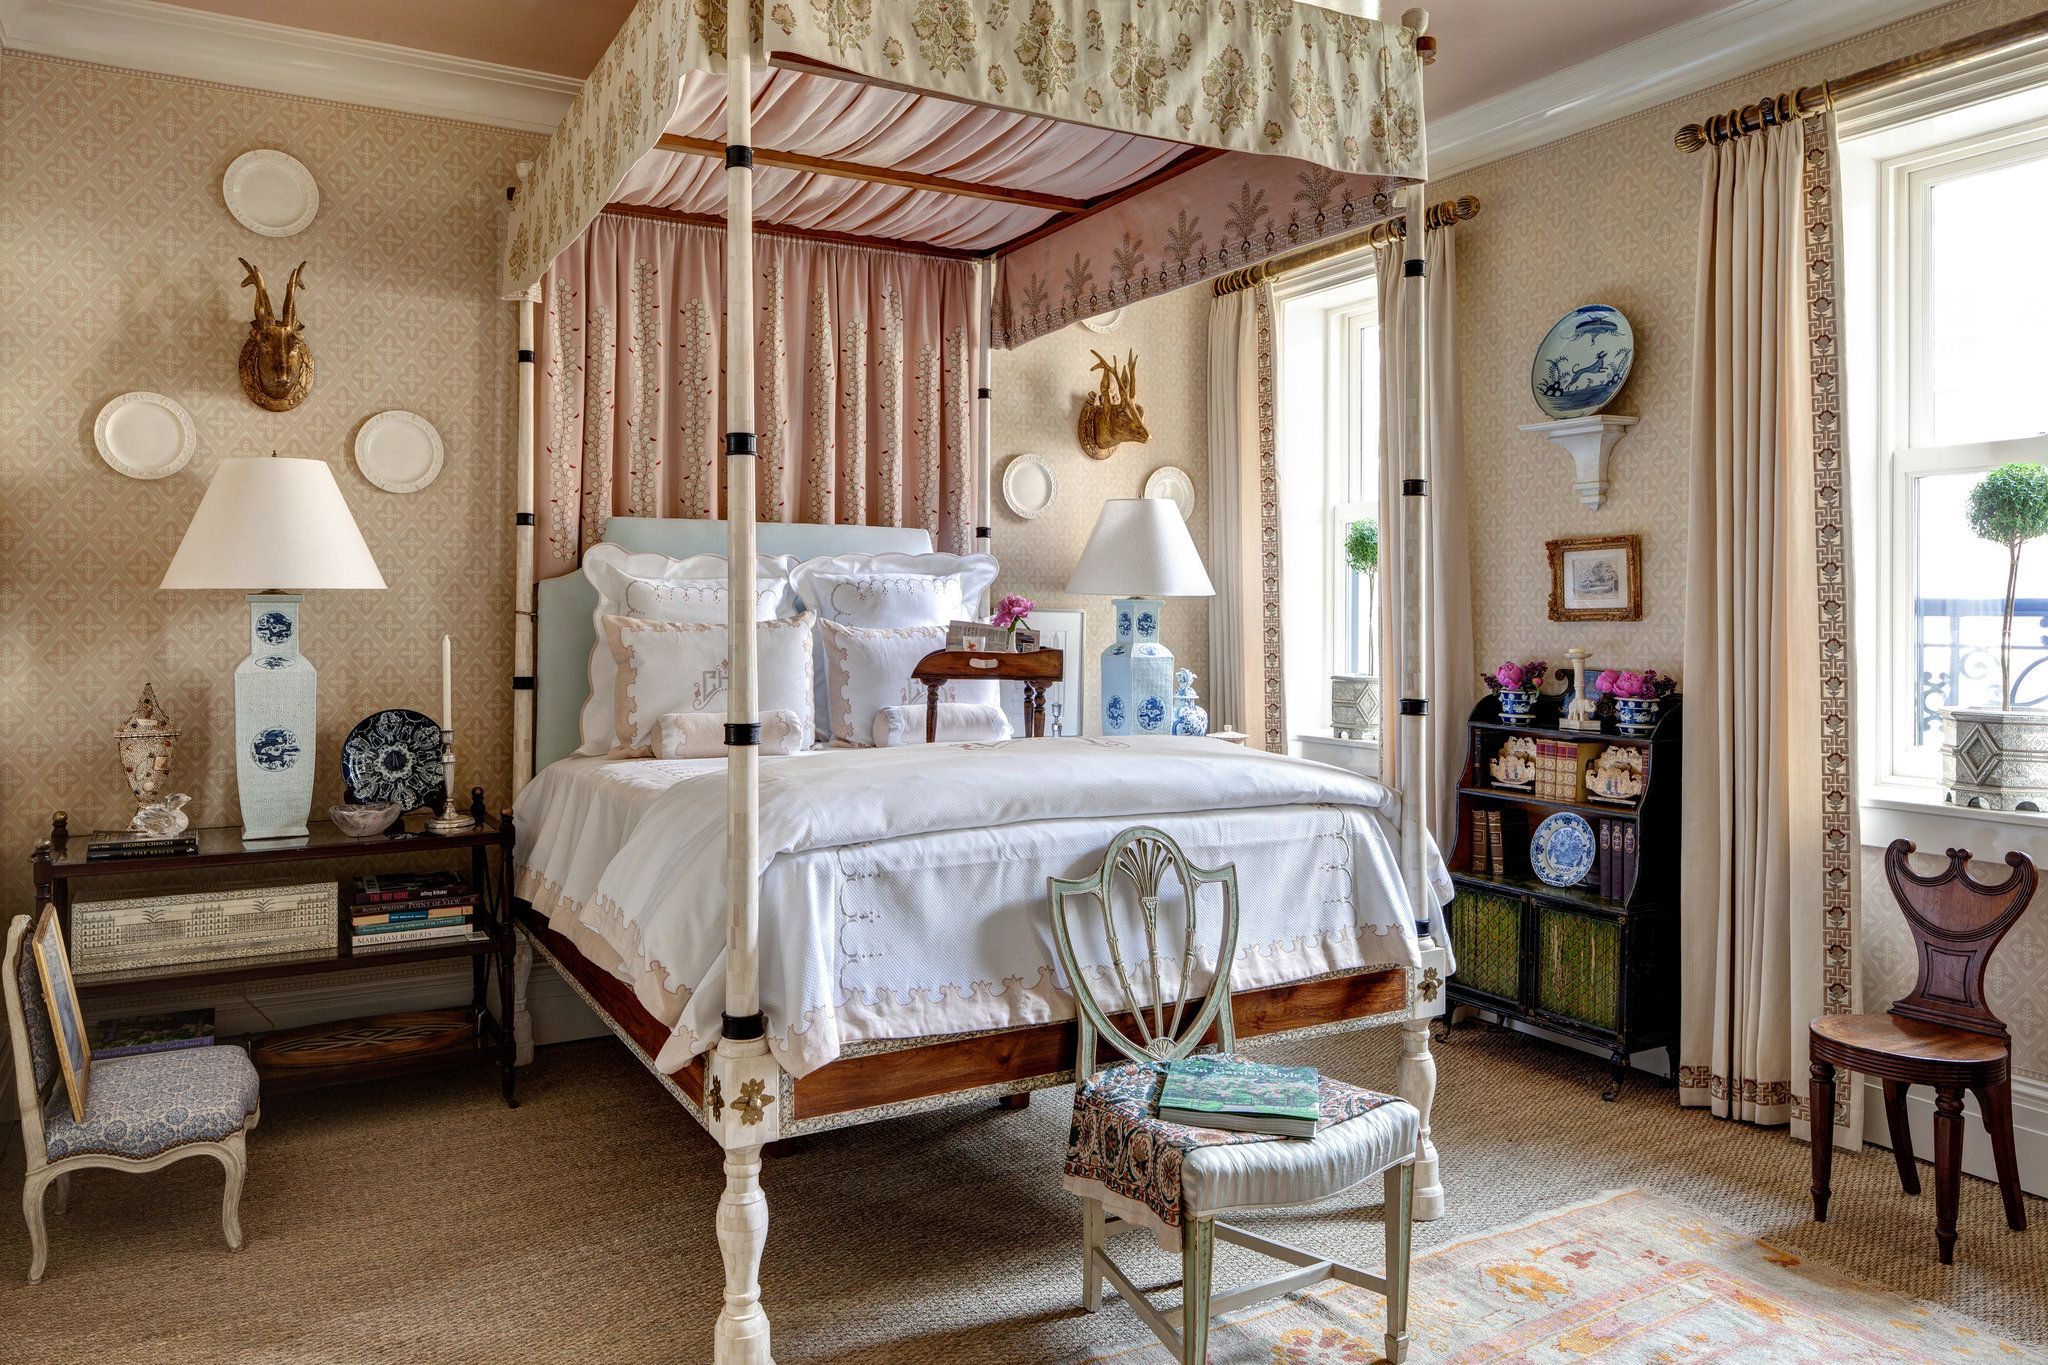 mansion bedrooms for girls. The Annual Designer Showcase Opens At Arthur Sachs Mansion, With Proceeds Benefiting Kips Bay Boys \u0026 Girls Club, Which Turned 100 This Year. Mansion Bedrooms For